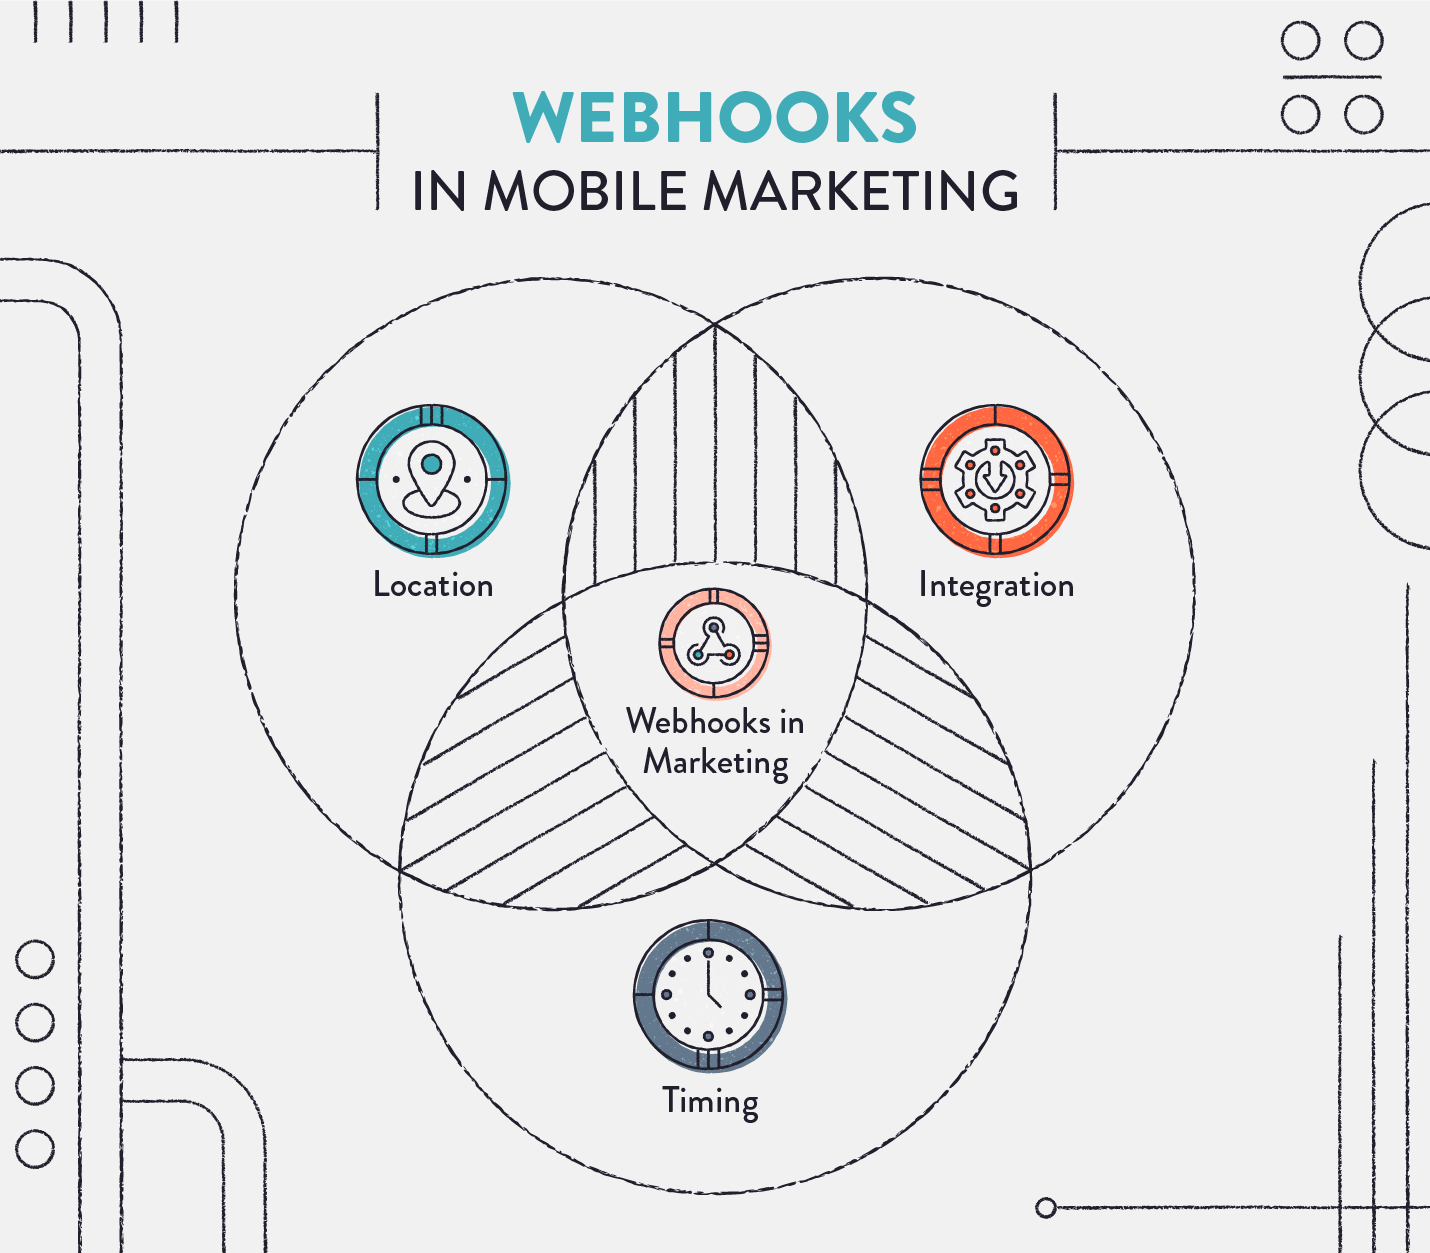 webhooks in mobile marketing venn diagram